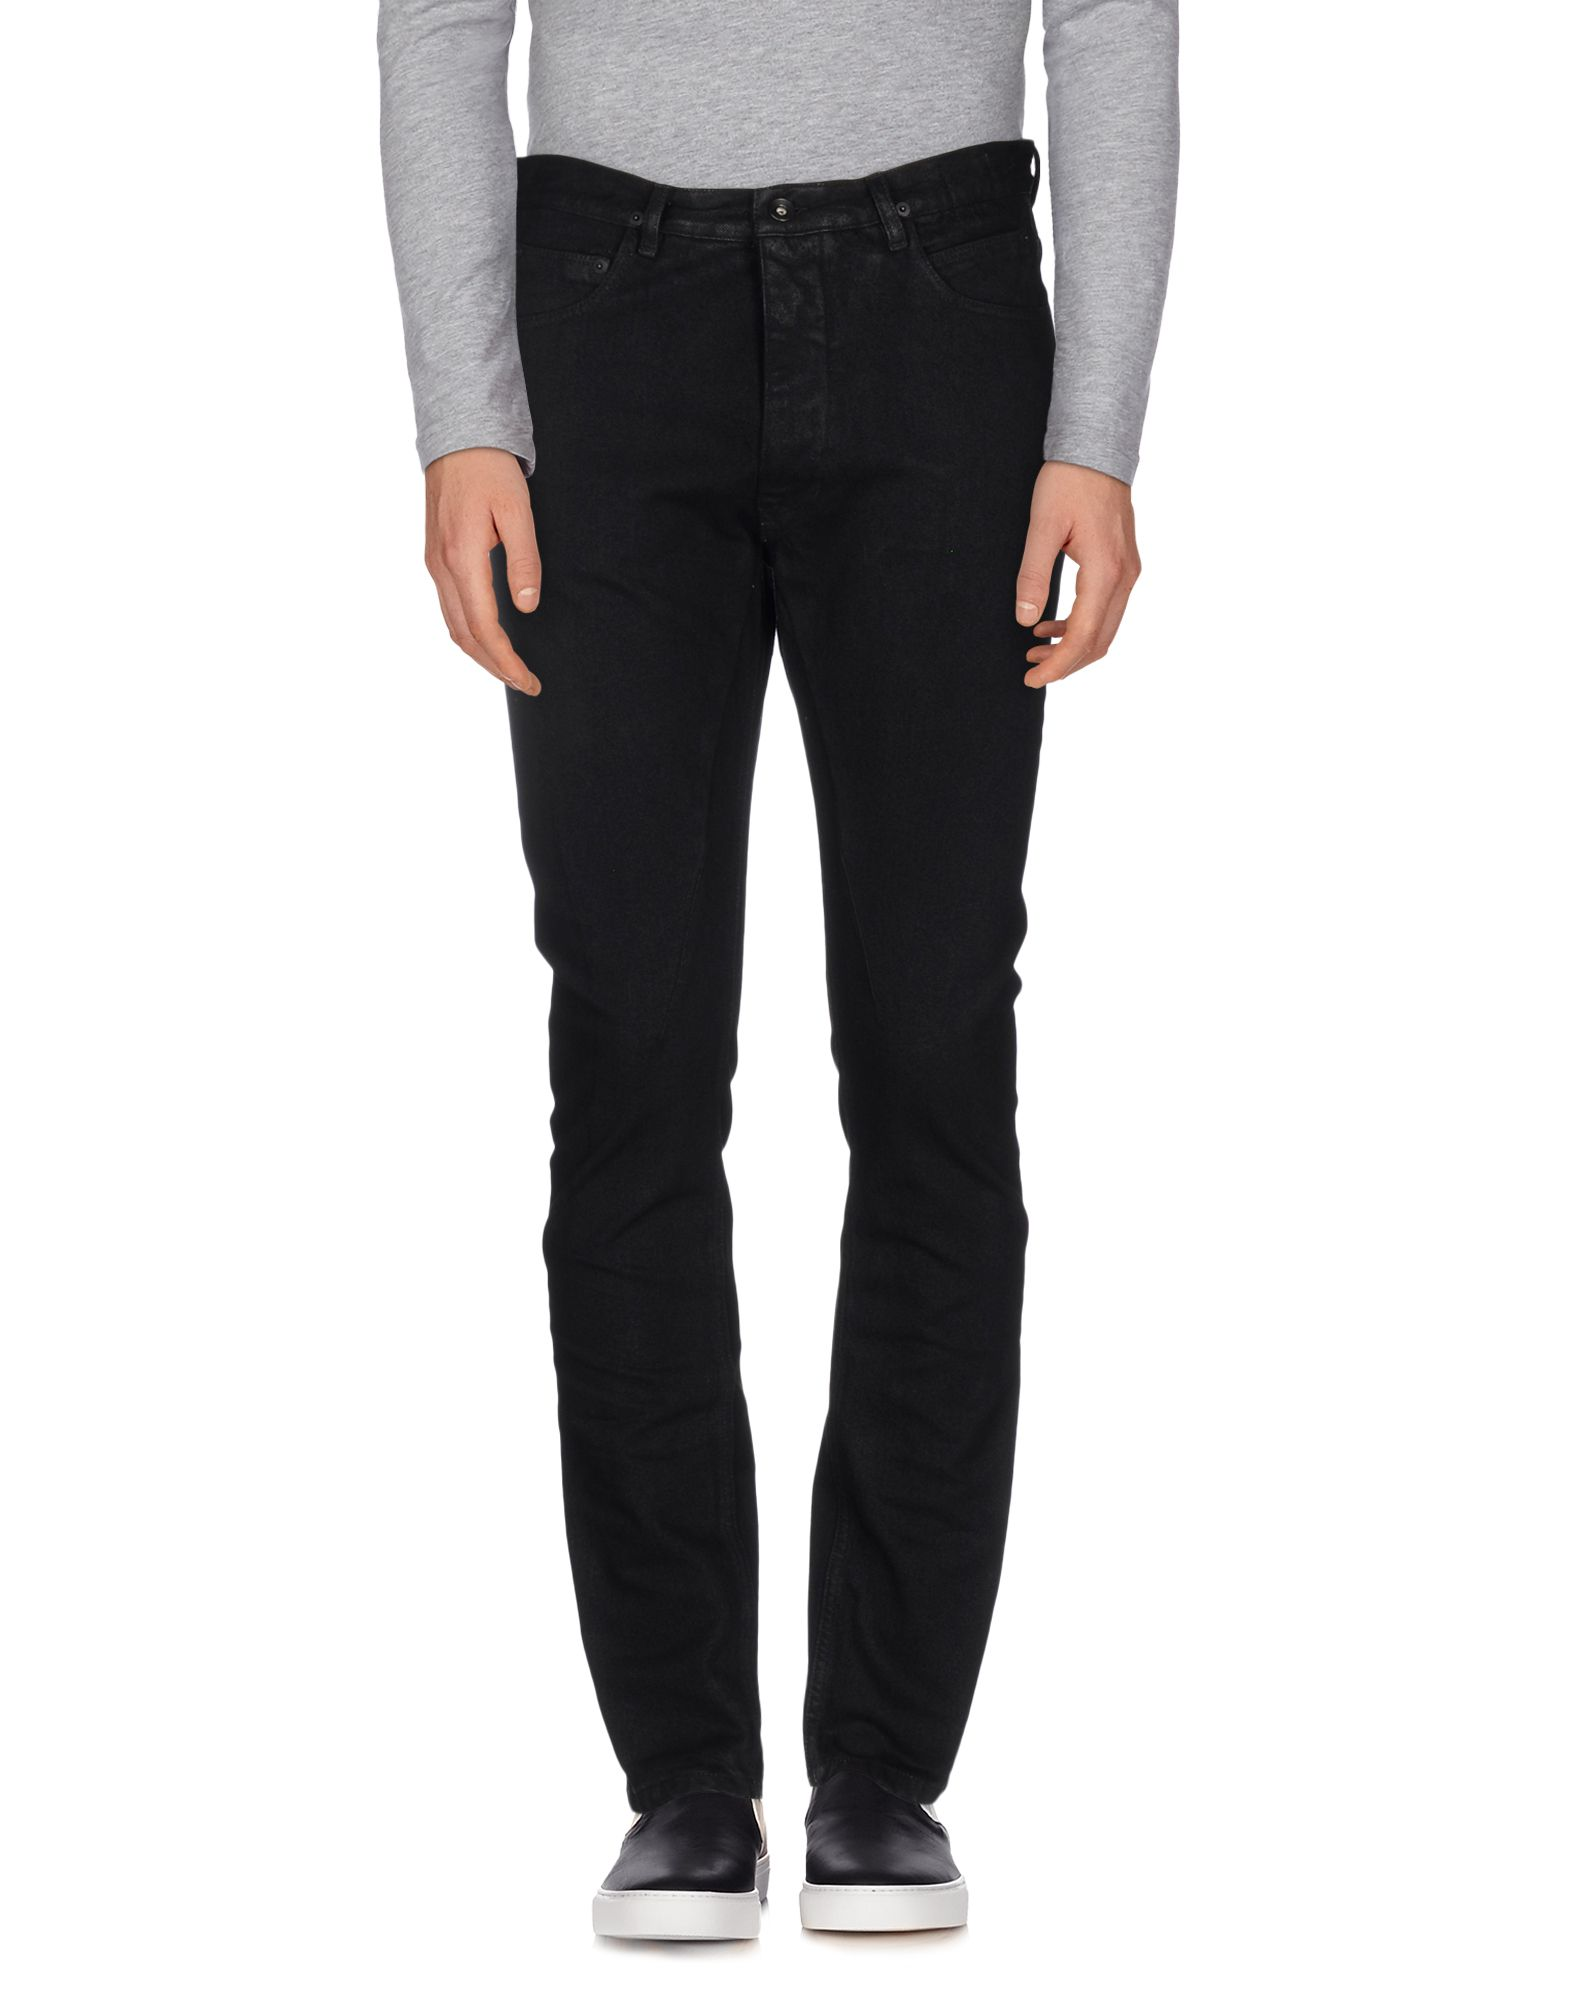 DRKSHDW BY RICK OWENS Jeans